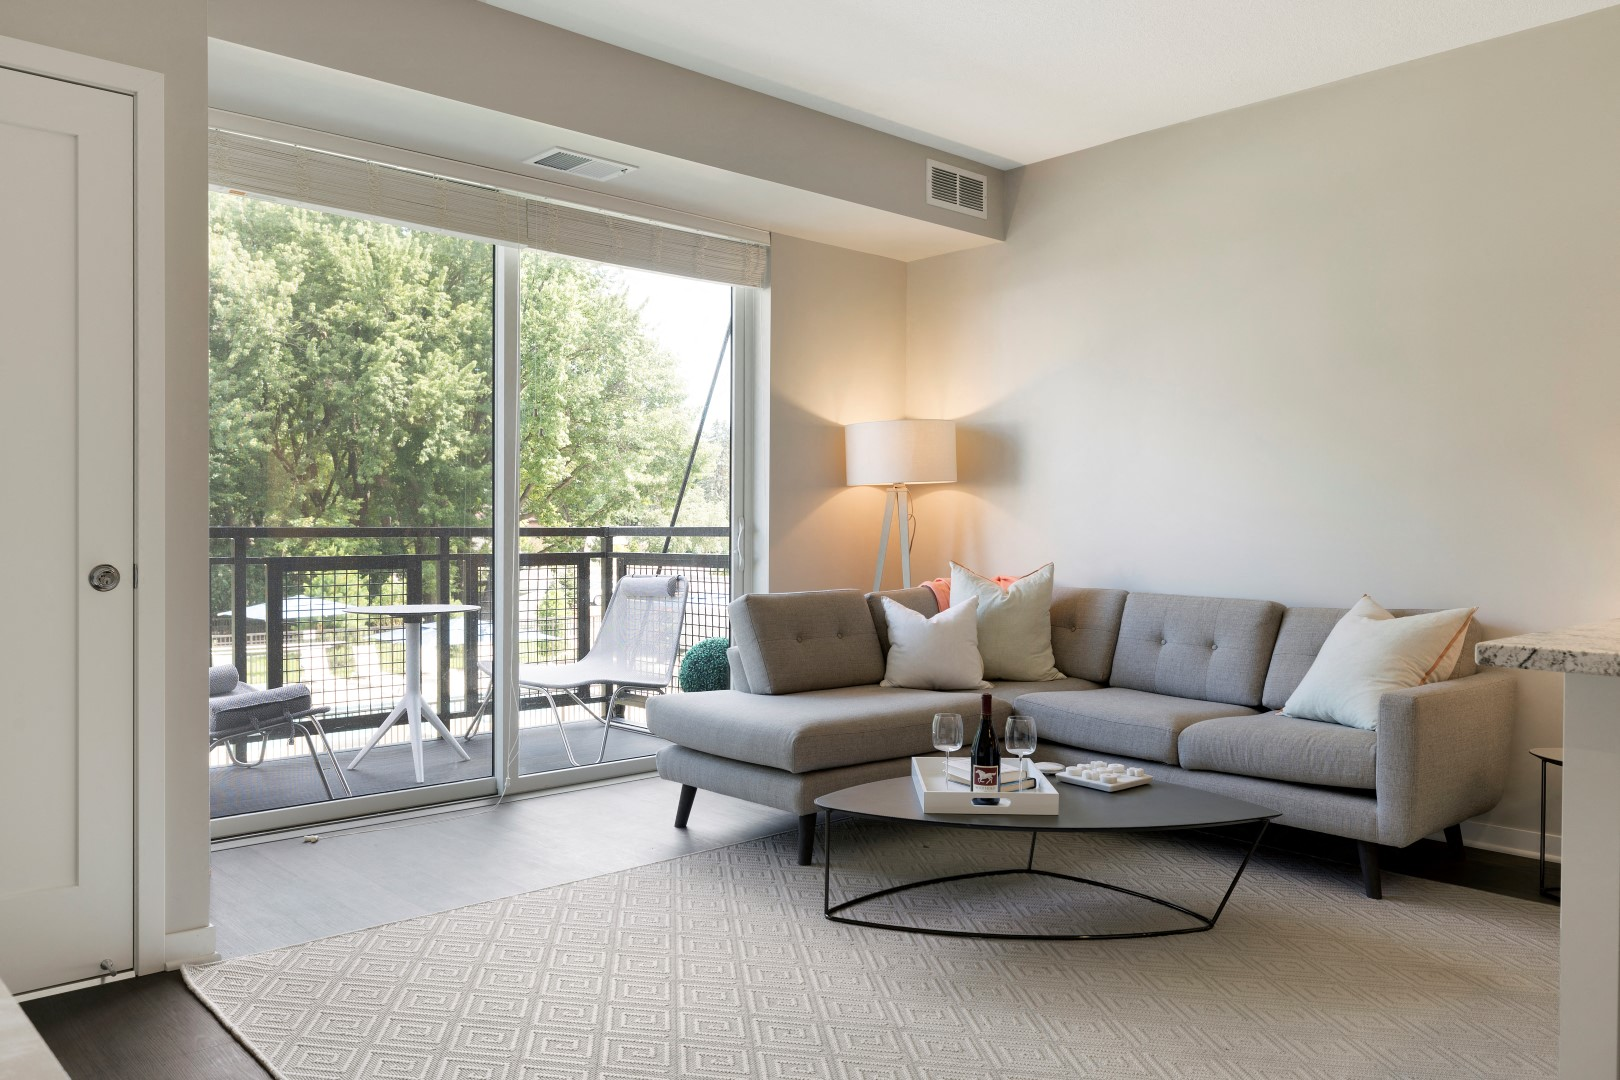 The McMillan Shoreview Model 201 Living Room